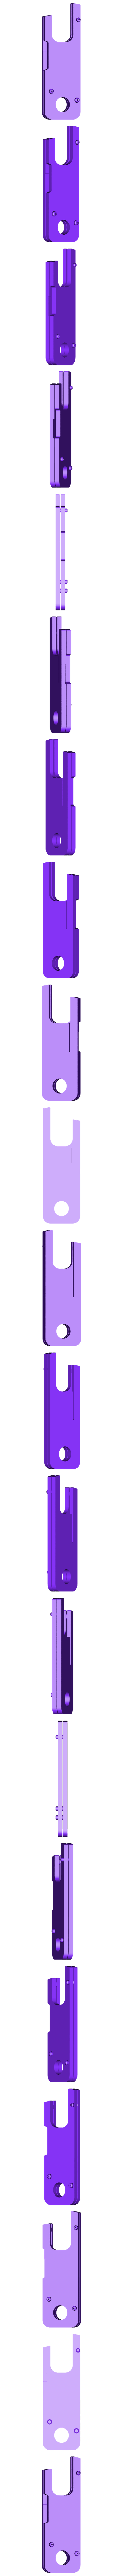 FLAT_BOX_CUTTER_PART_AB3_combined.stl Download free STL file Flat Box Cutter • 3D printable model, MuSSy